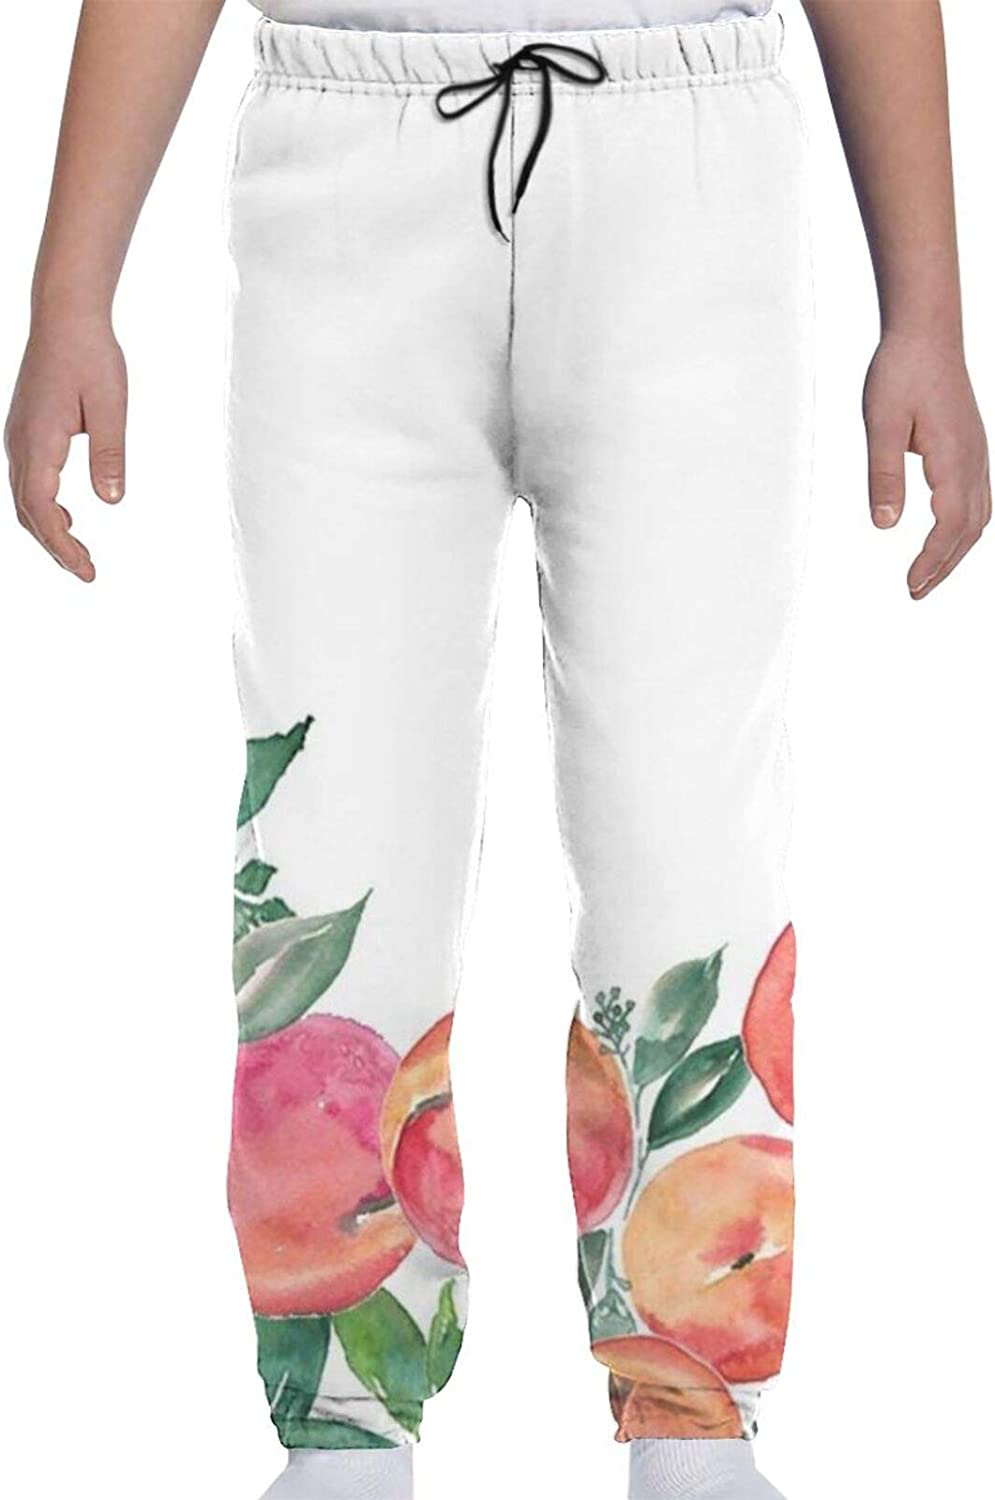 Product Gorgerous Youth Gifts Sweatpants 3D Print Trousers Girls Boys C Teens